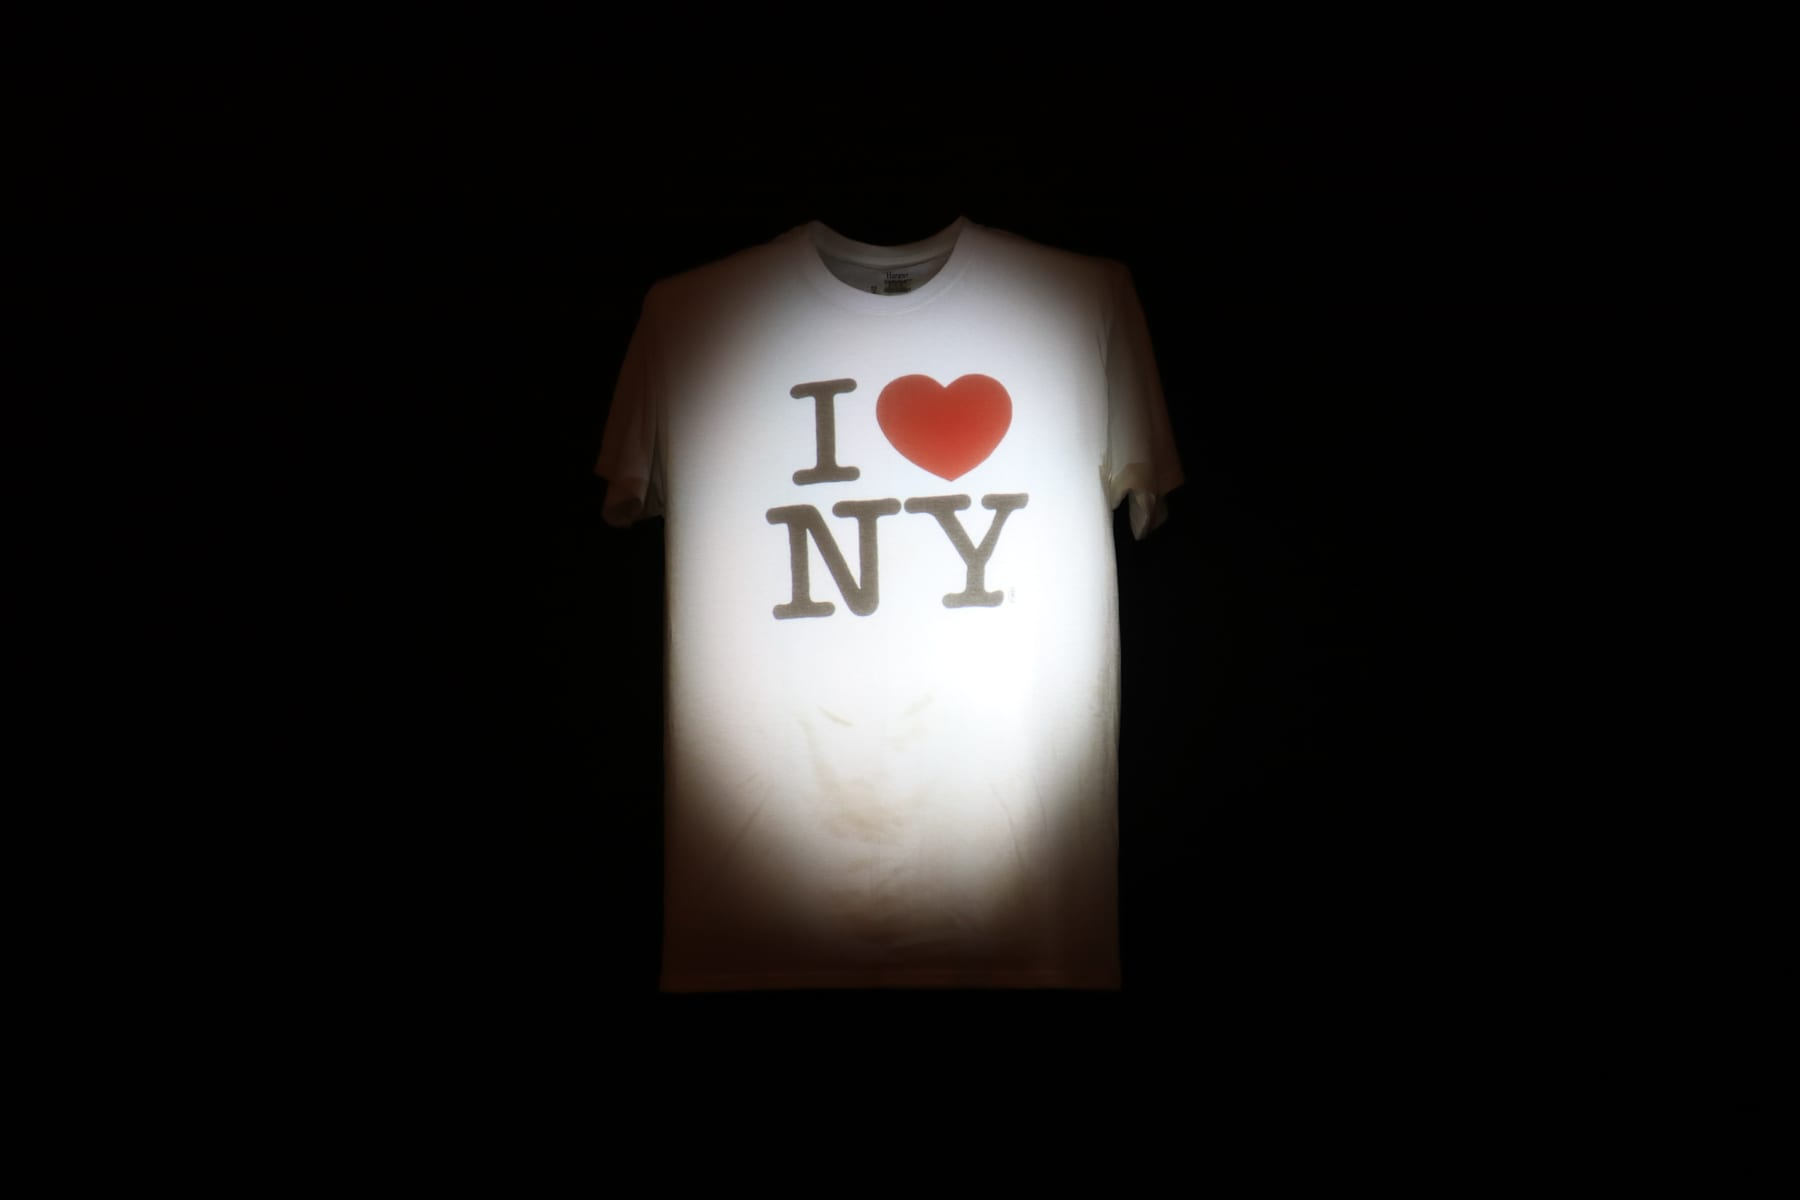 08-NY-journey-artmuseum23-shirts01.jpg